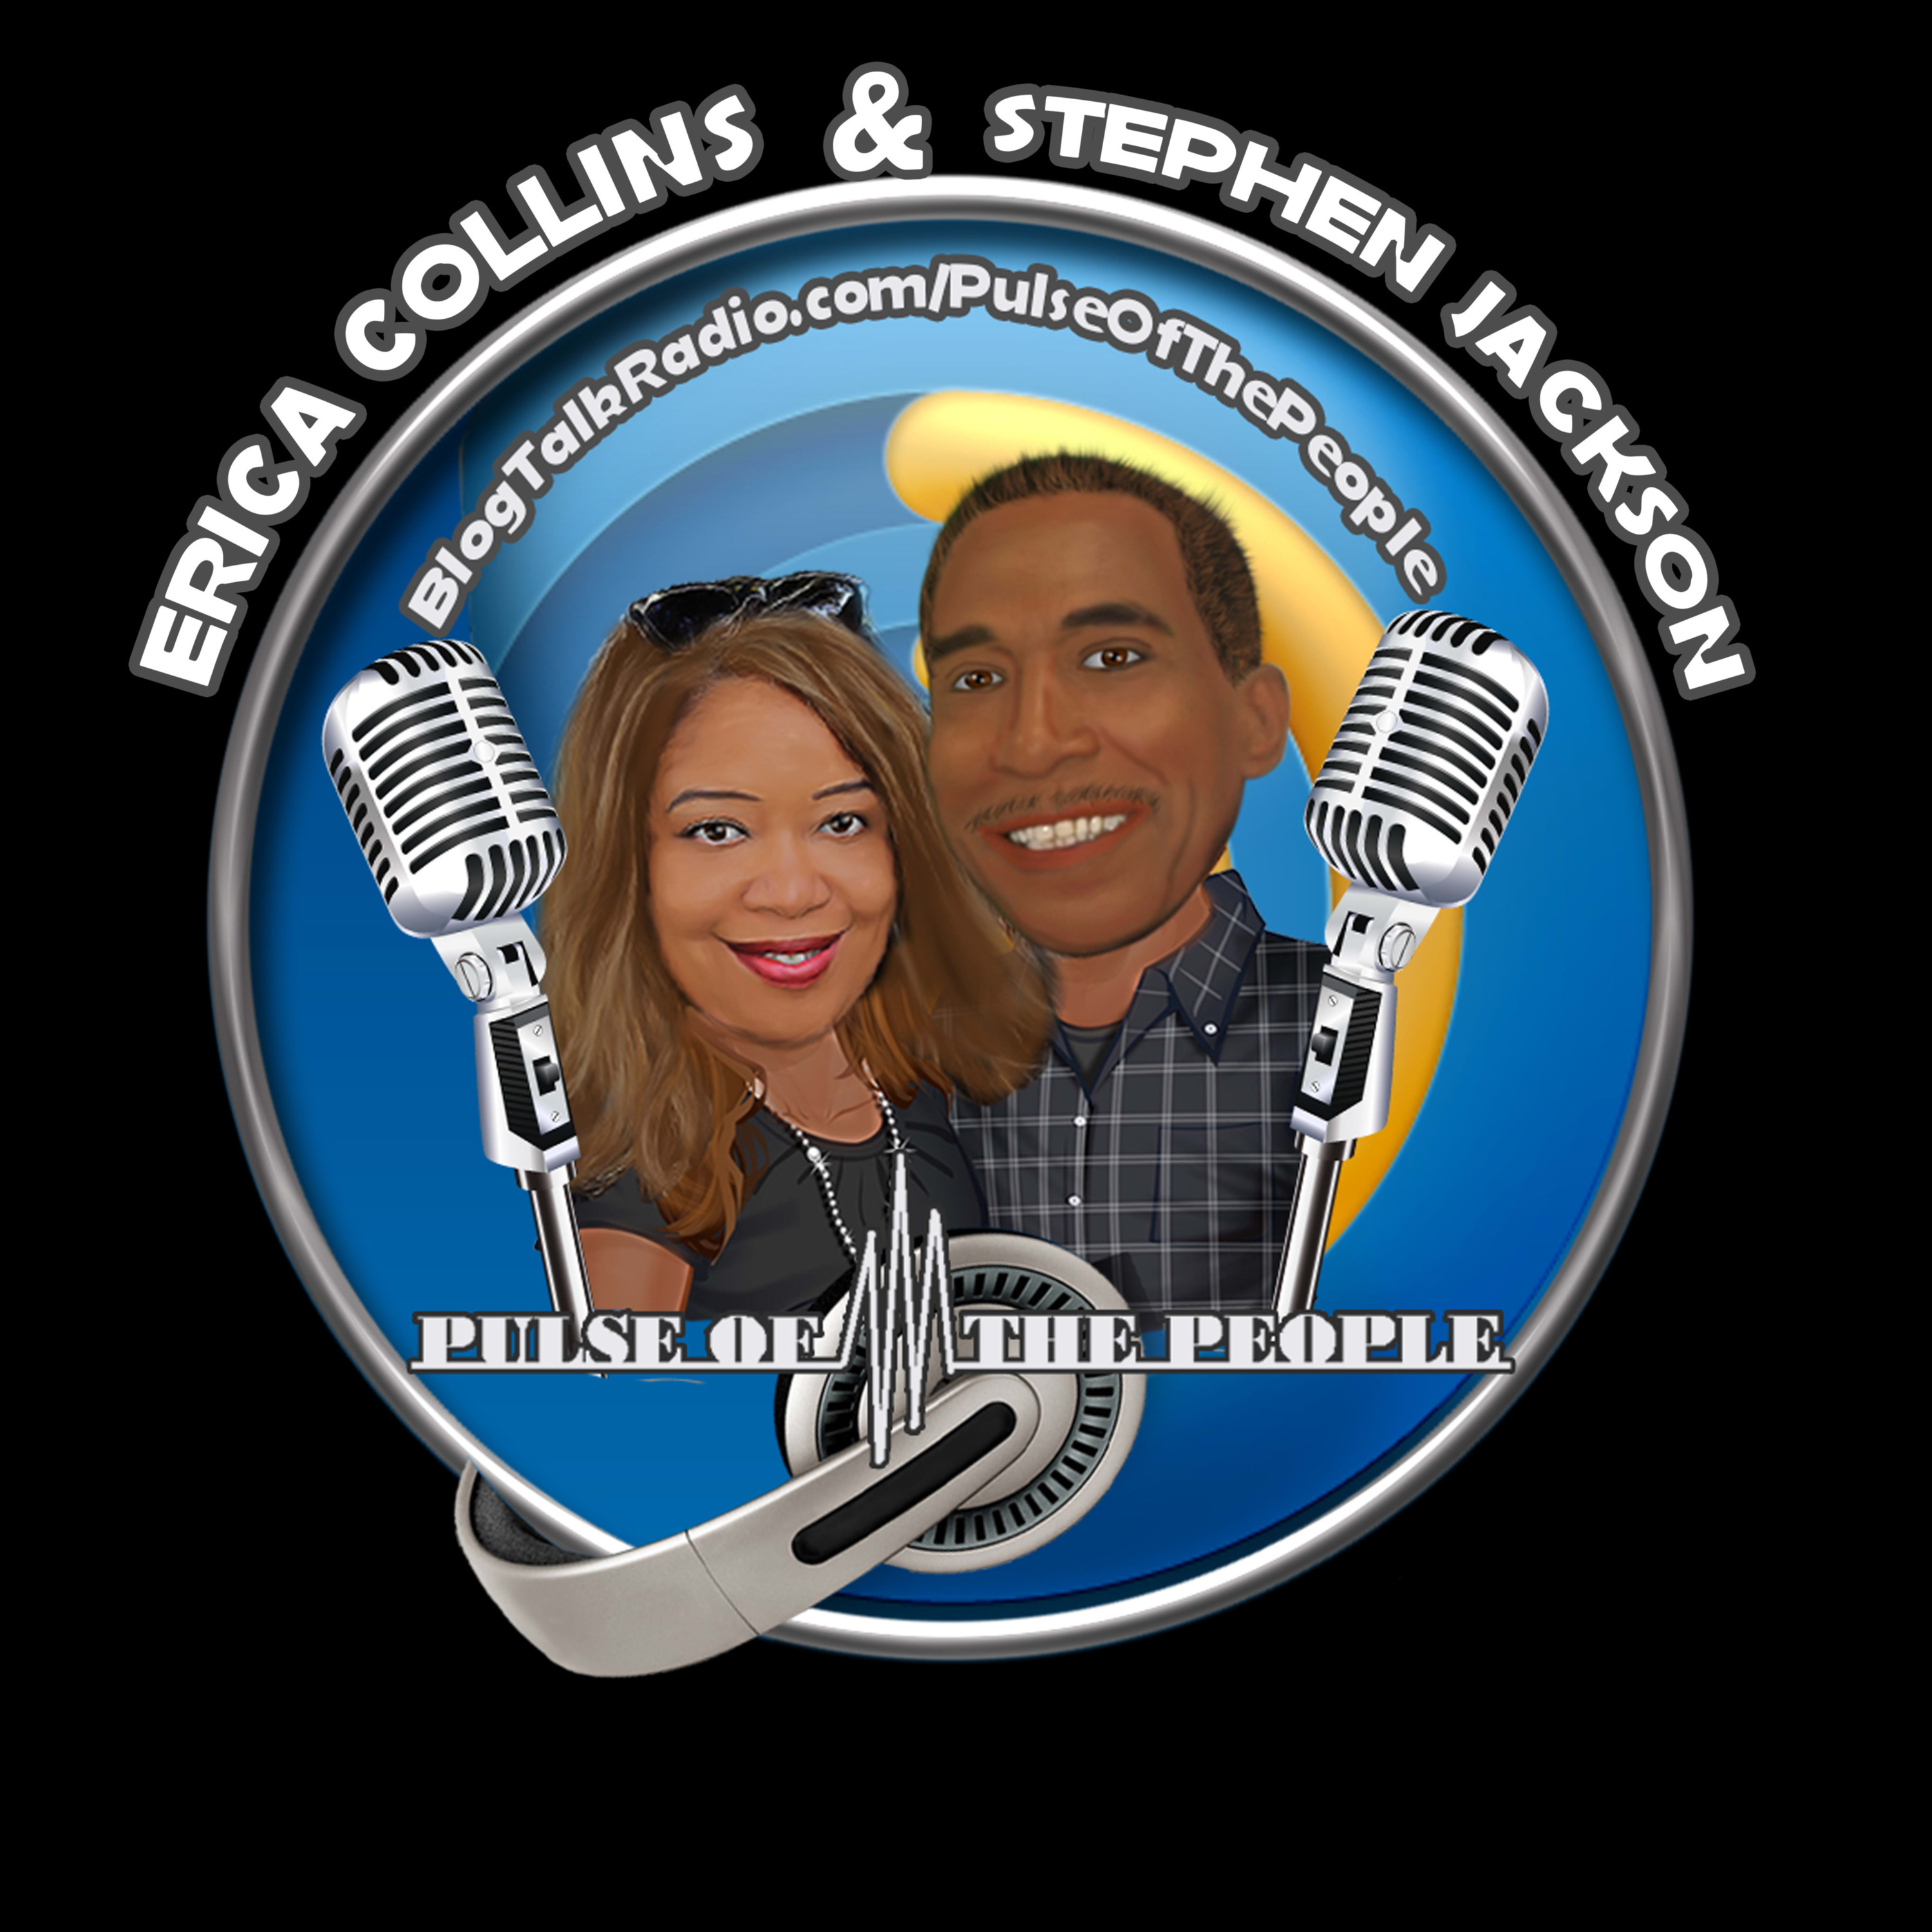 Erica Collins & Stephen Jackson interview NAN's General Counsel Michael Hardy